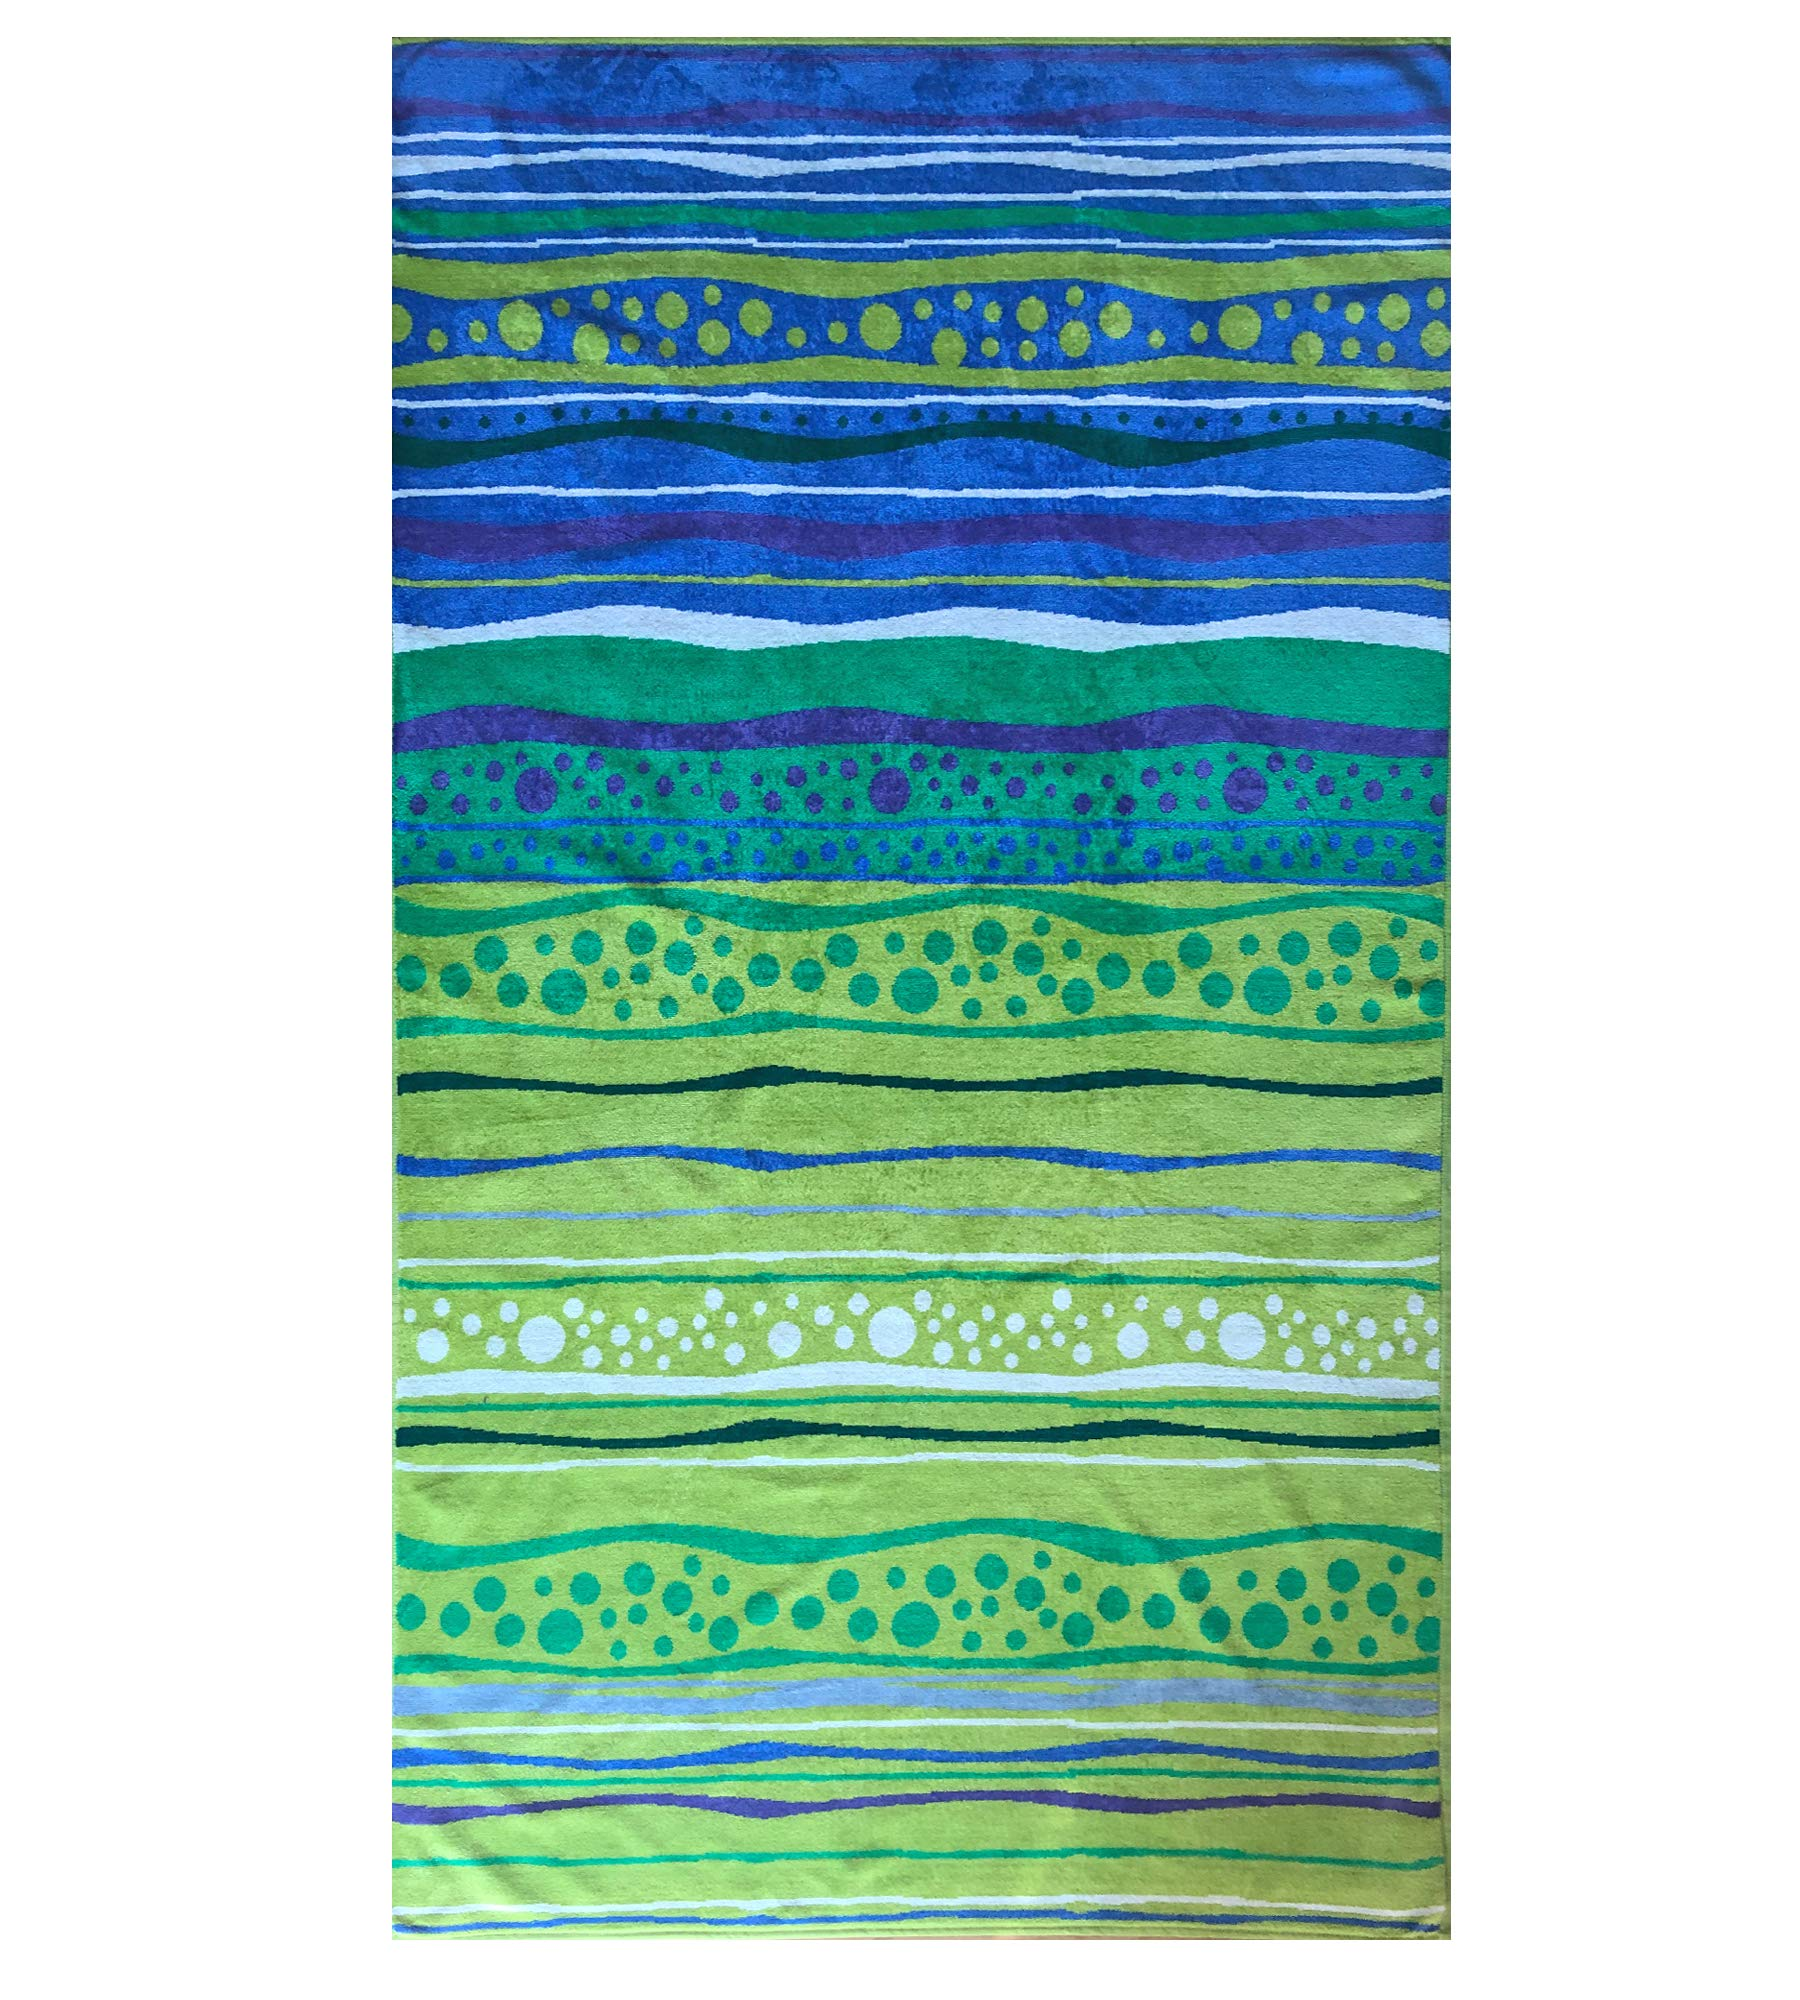 Espalma Over Sized Luxury Beach Towel, Large Size 70 Inch x 40 Inch Soft Velour and Reversible Absorbent Cotton Terry, Thick and Plush Jacquard Beach Towel, Blue/Green Pebble Beach Stripe